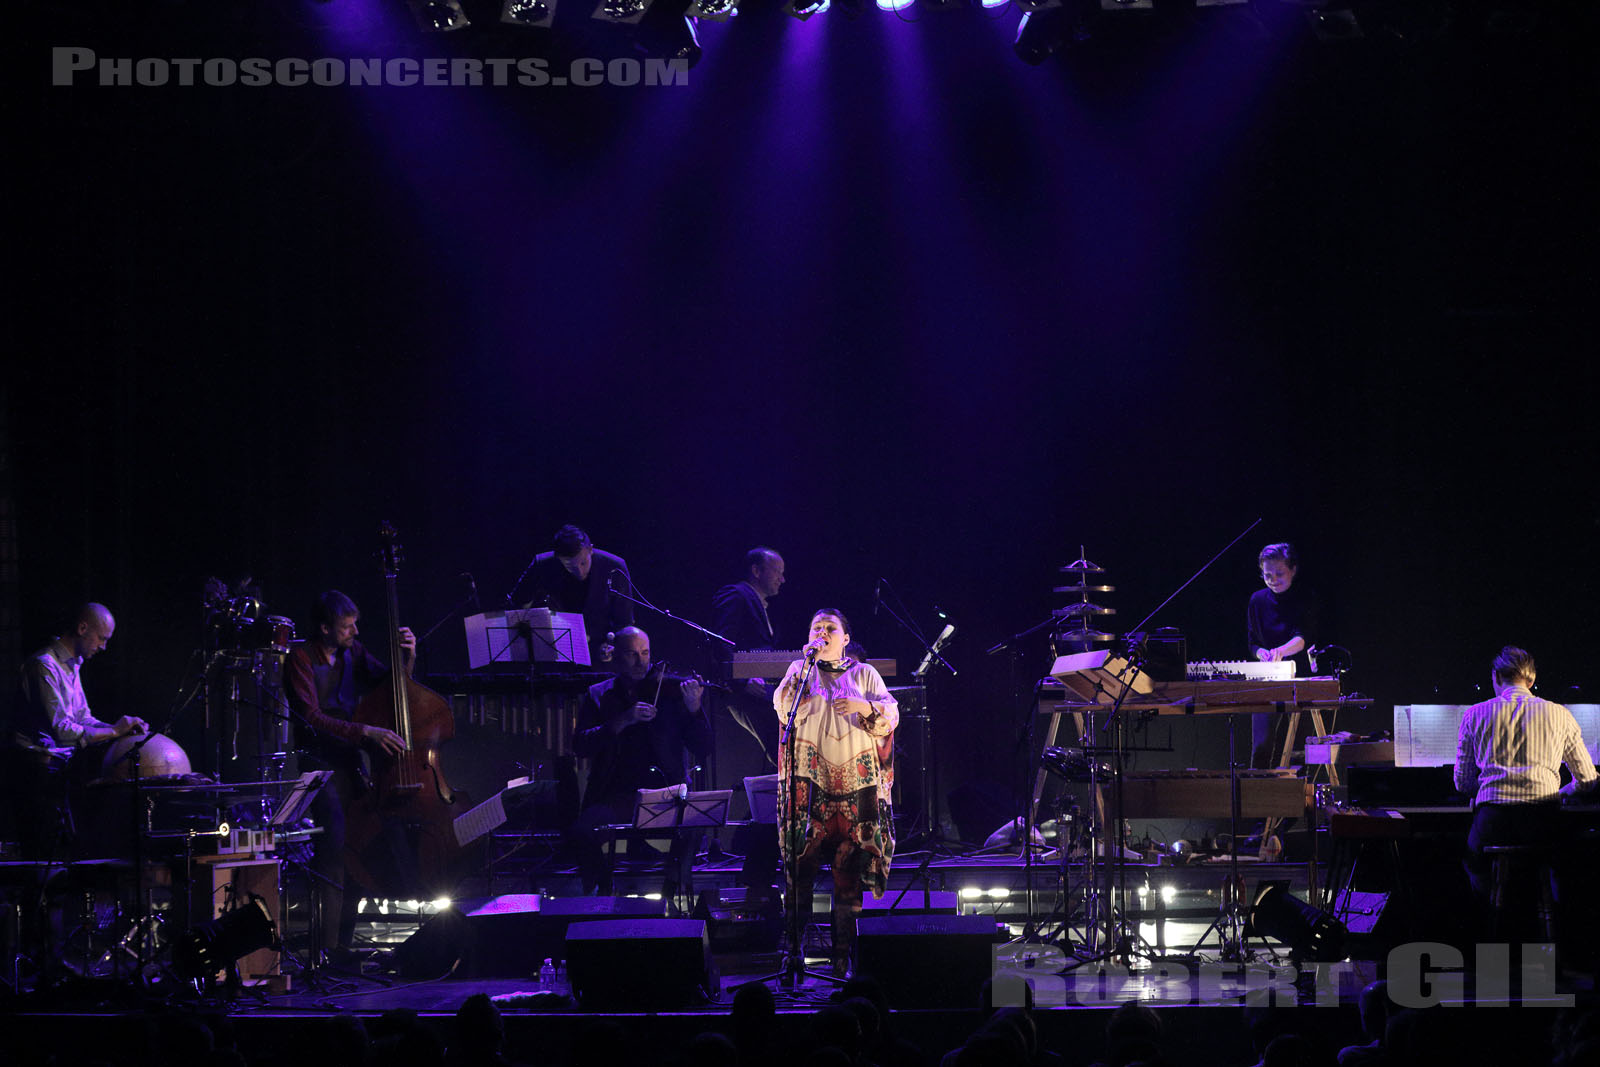 EMILIANA TORRINI AND THE COLORIST - 2017-02-22 - PARIS - Le Bataclan